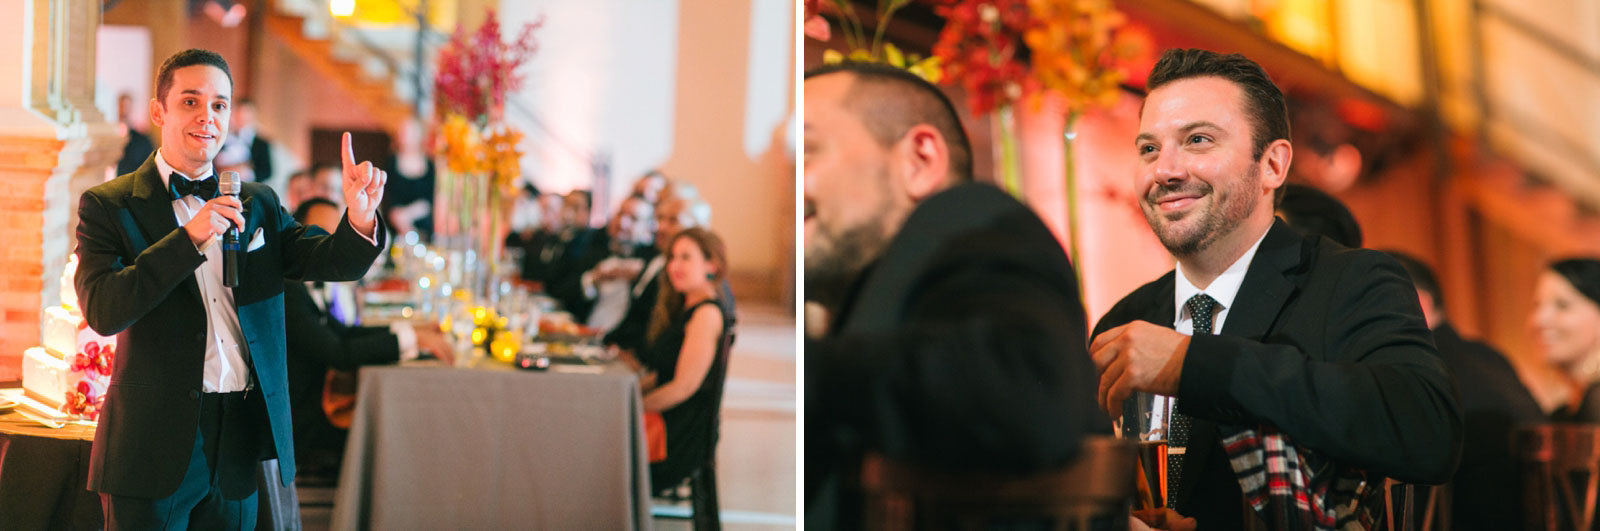 Best man giving speech and wedding guests reacting to best man speech during wedding reception